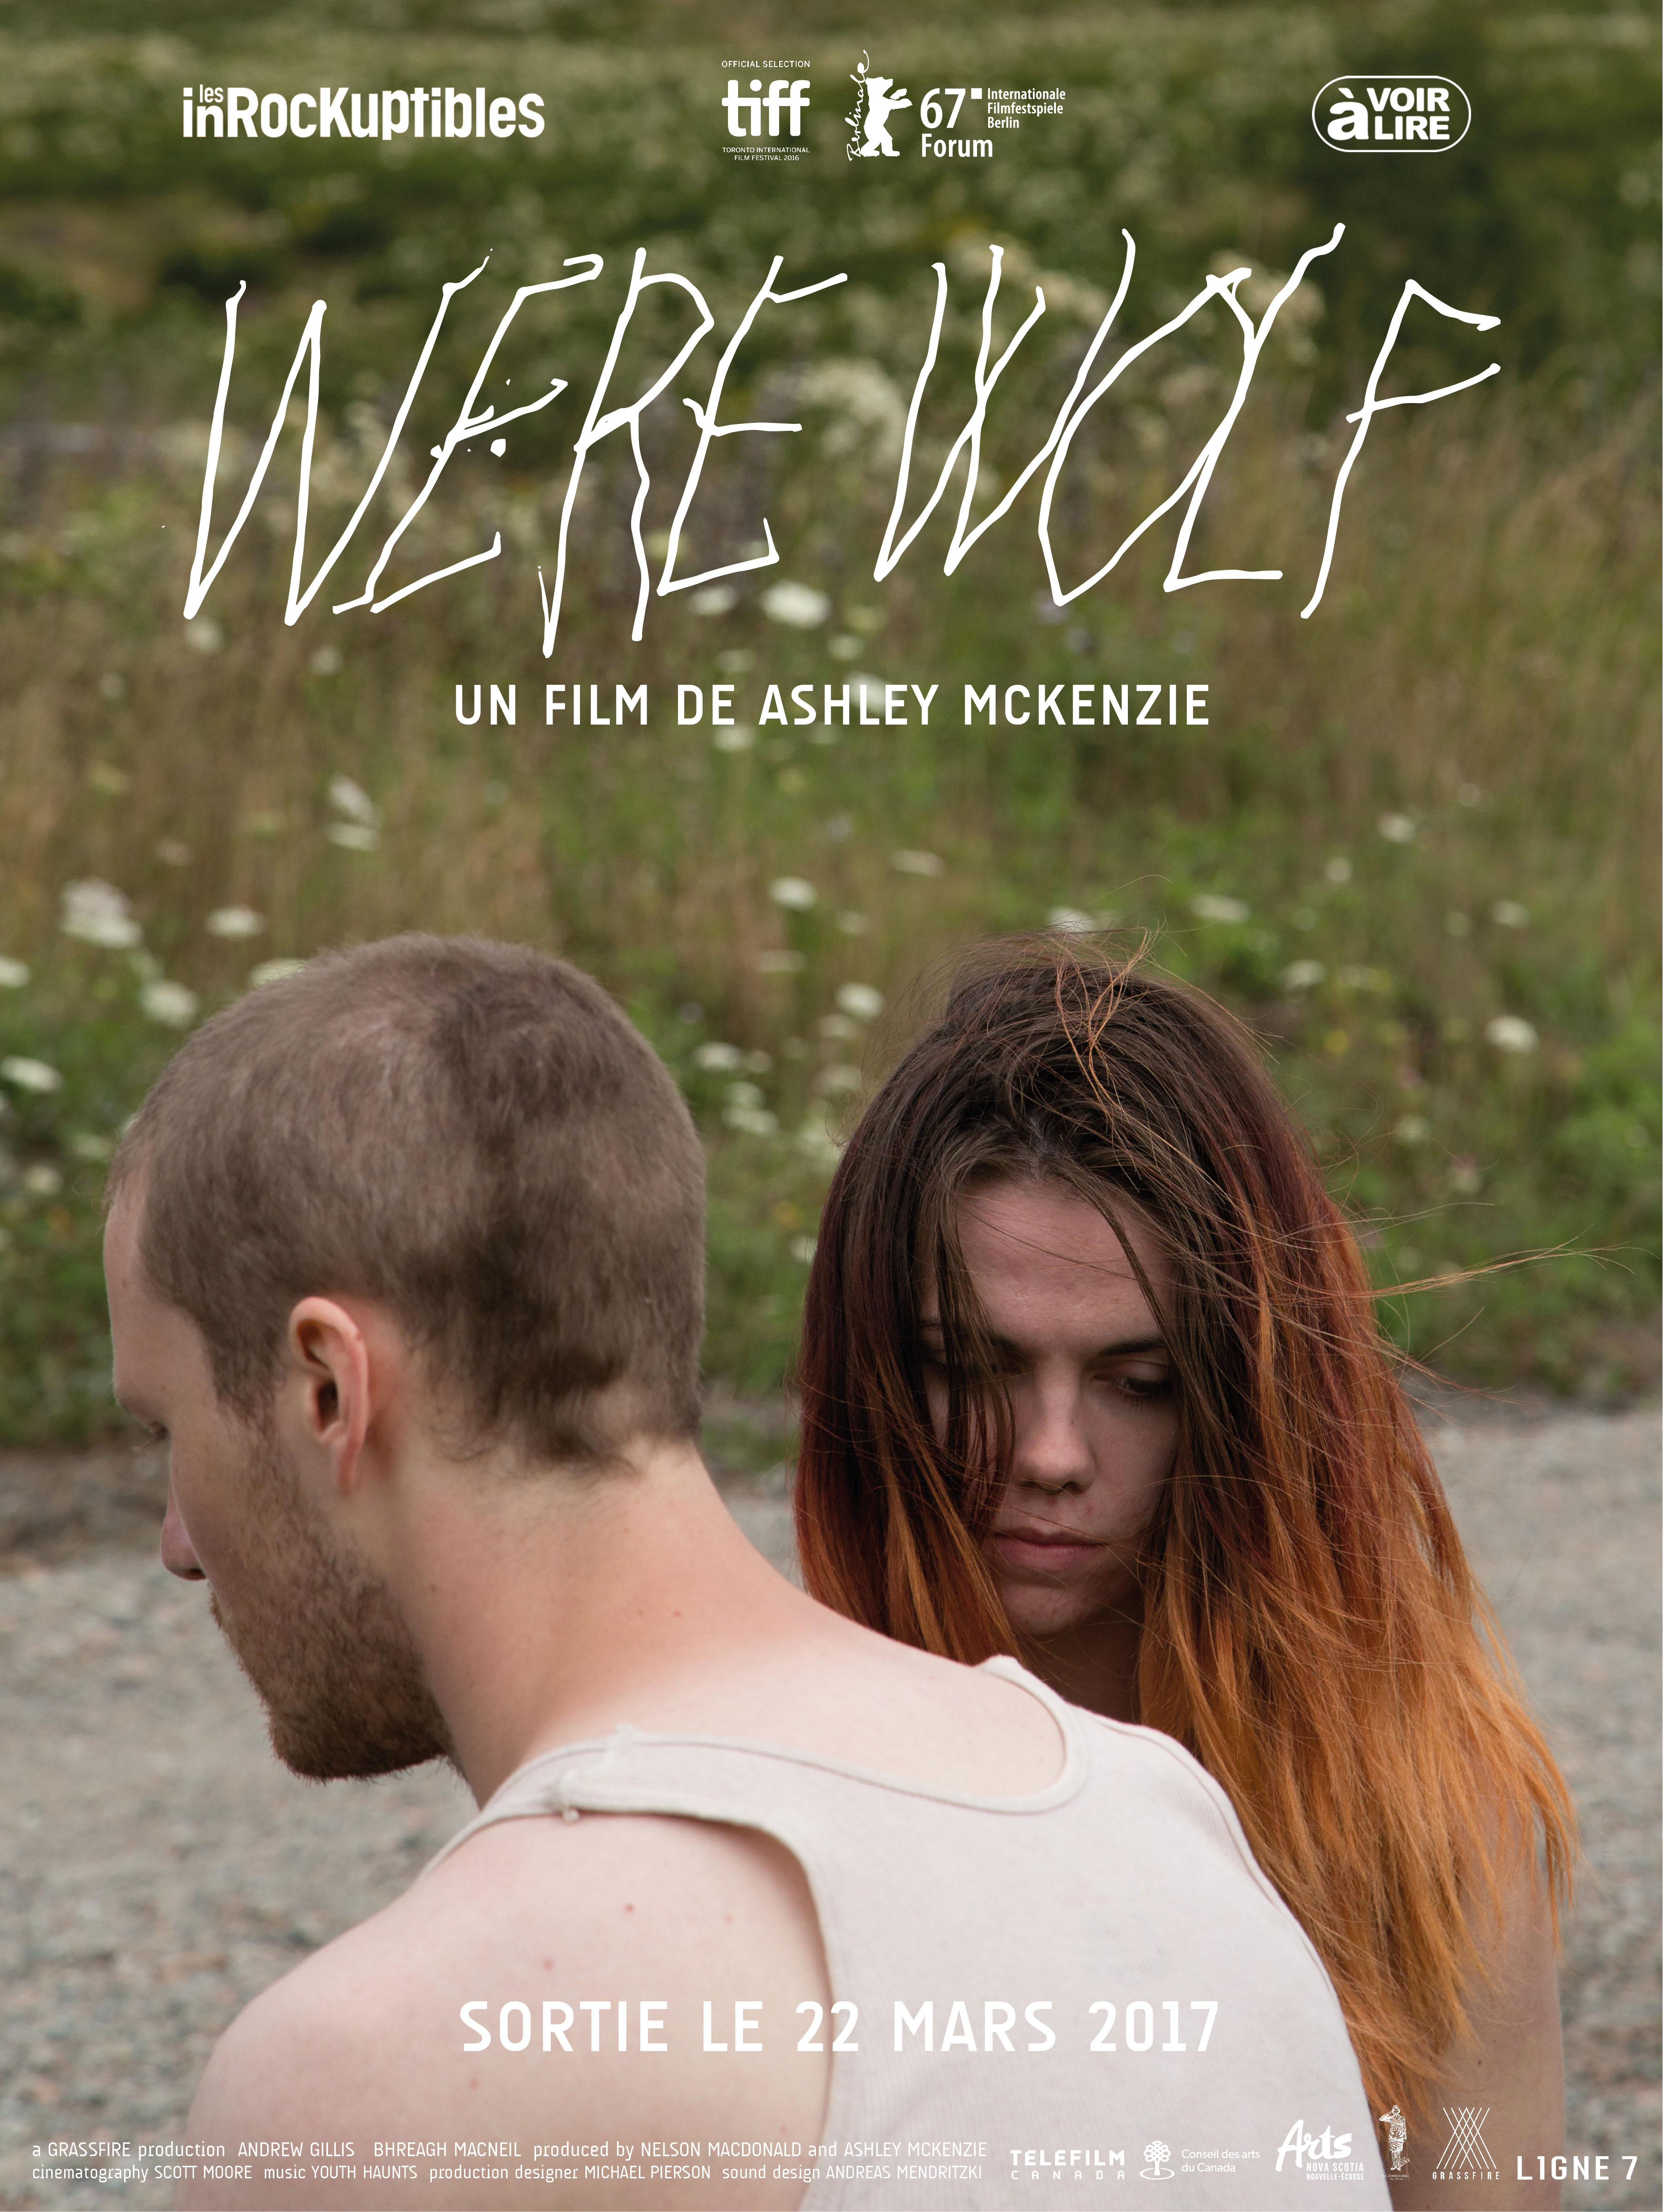 Werewolf : interview de la réalisatrice Ashley McKenzie